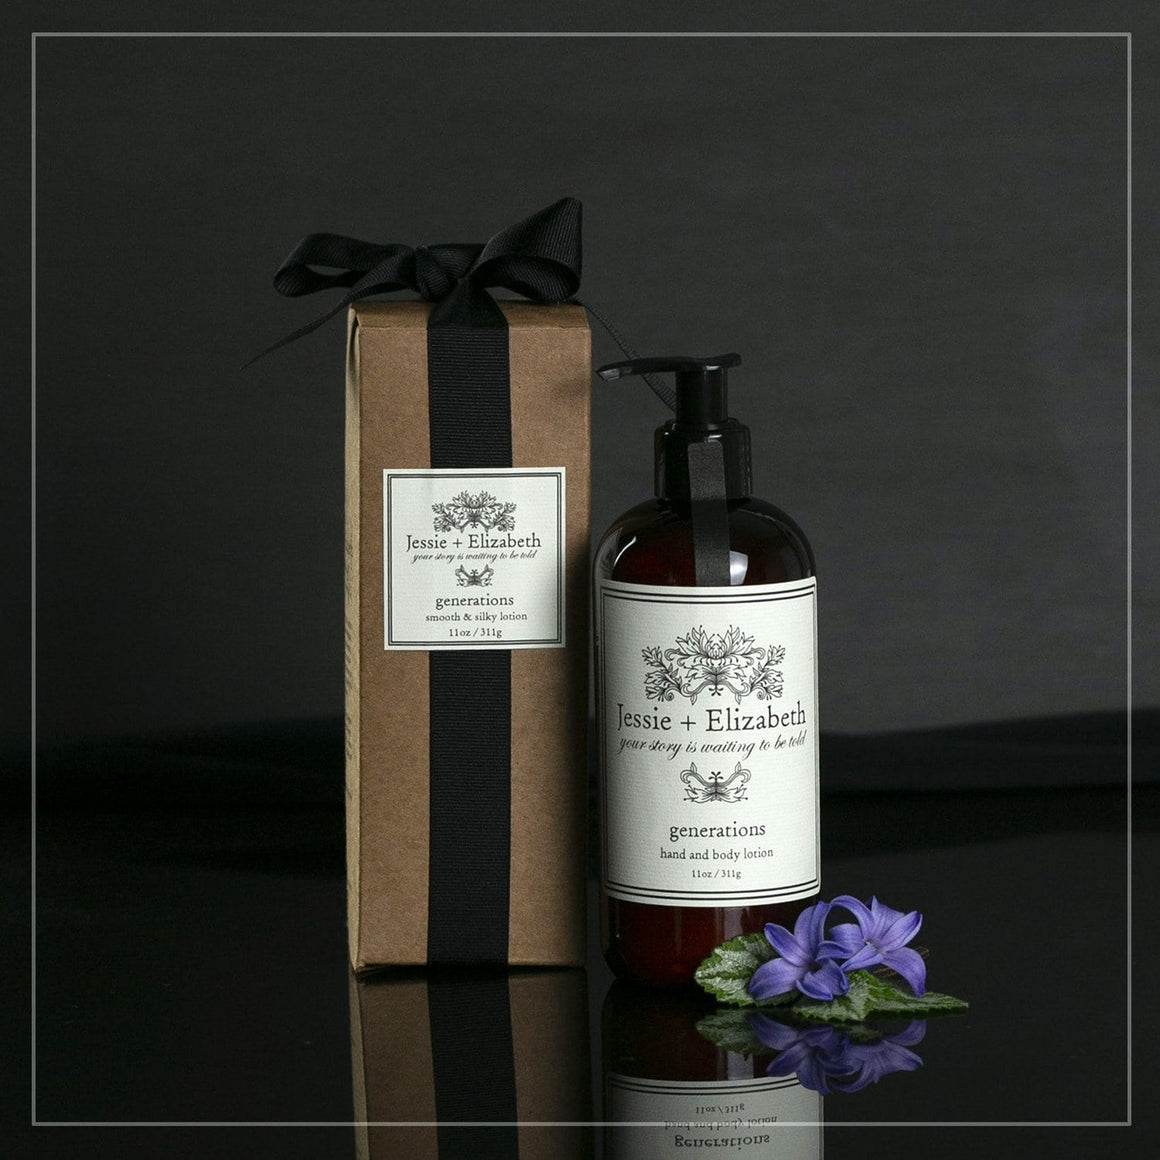 Generations 11 oz bottle and gift box